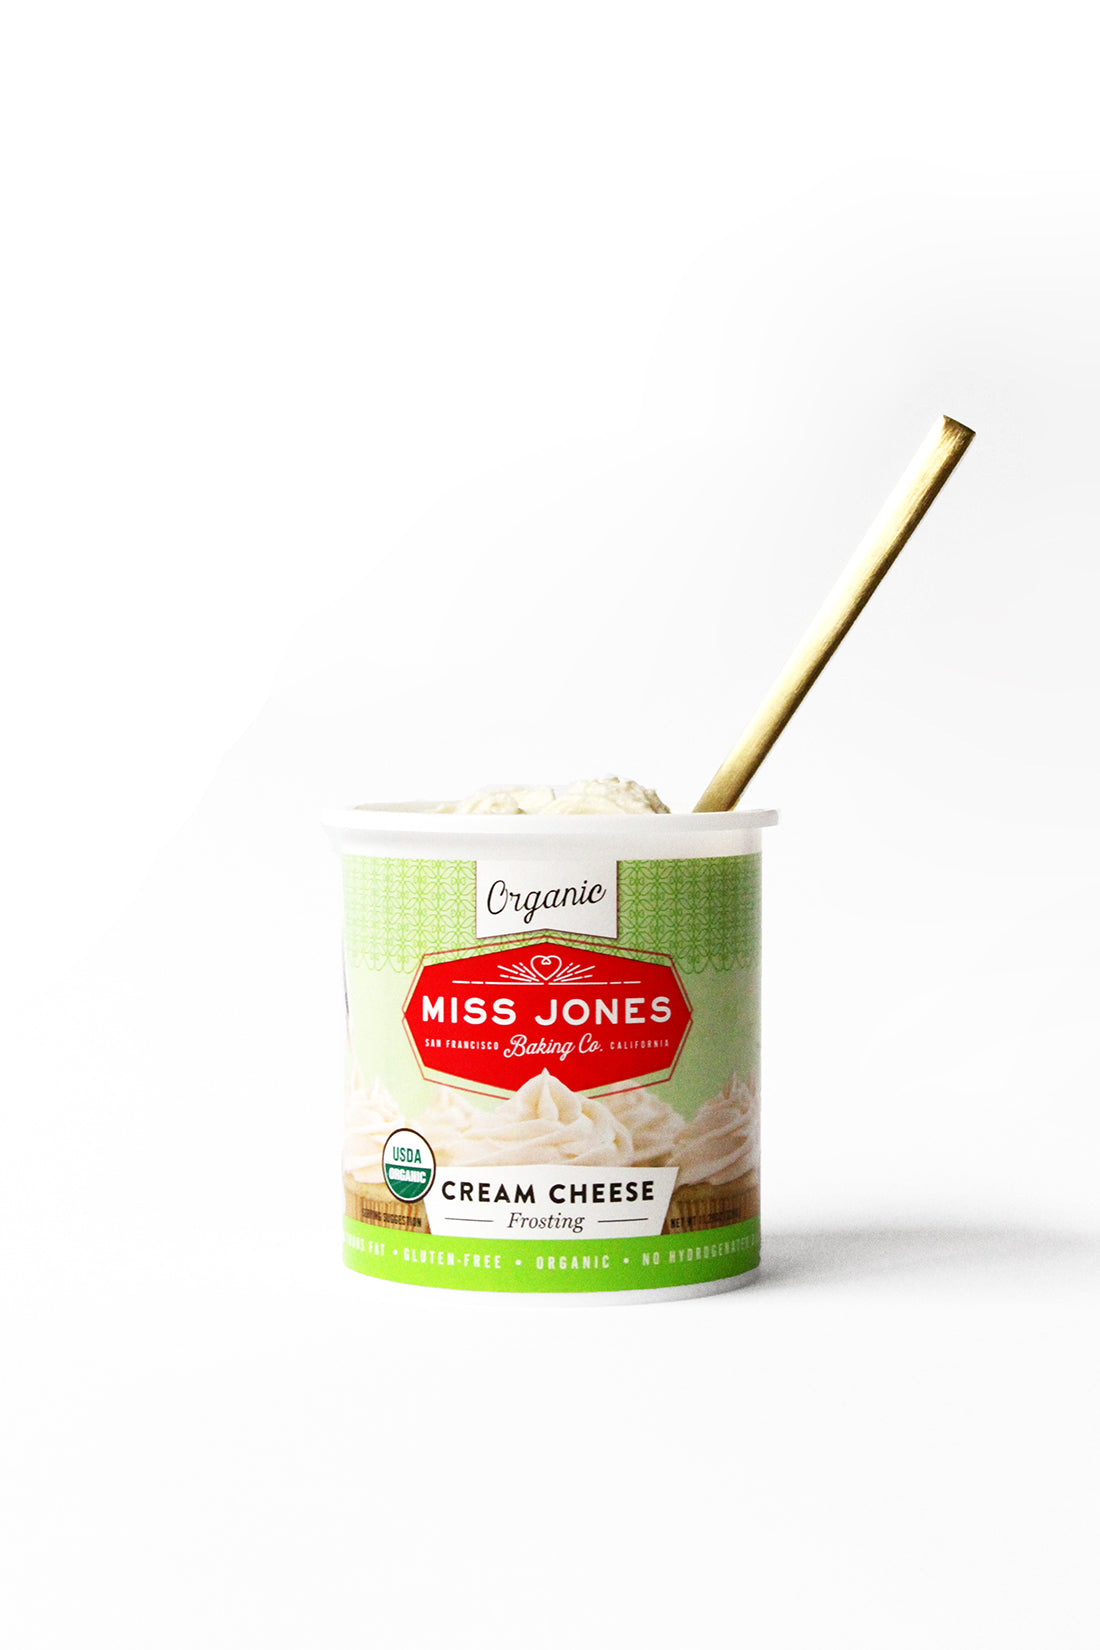 Image of Miss Jones Baking Co Cream Cheese Frosting with a gold spoon inside used for Miss Jones Baking Co Classic Hummingbird Cake